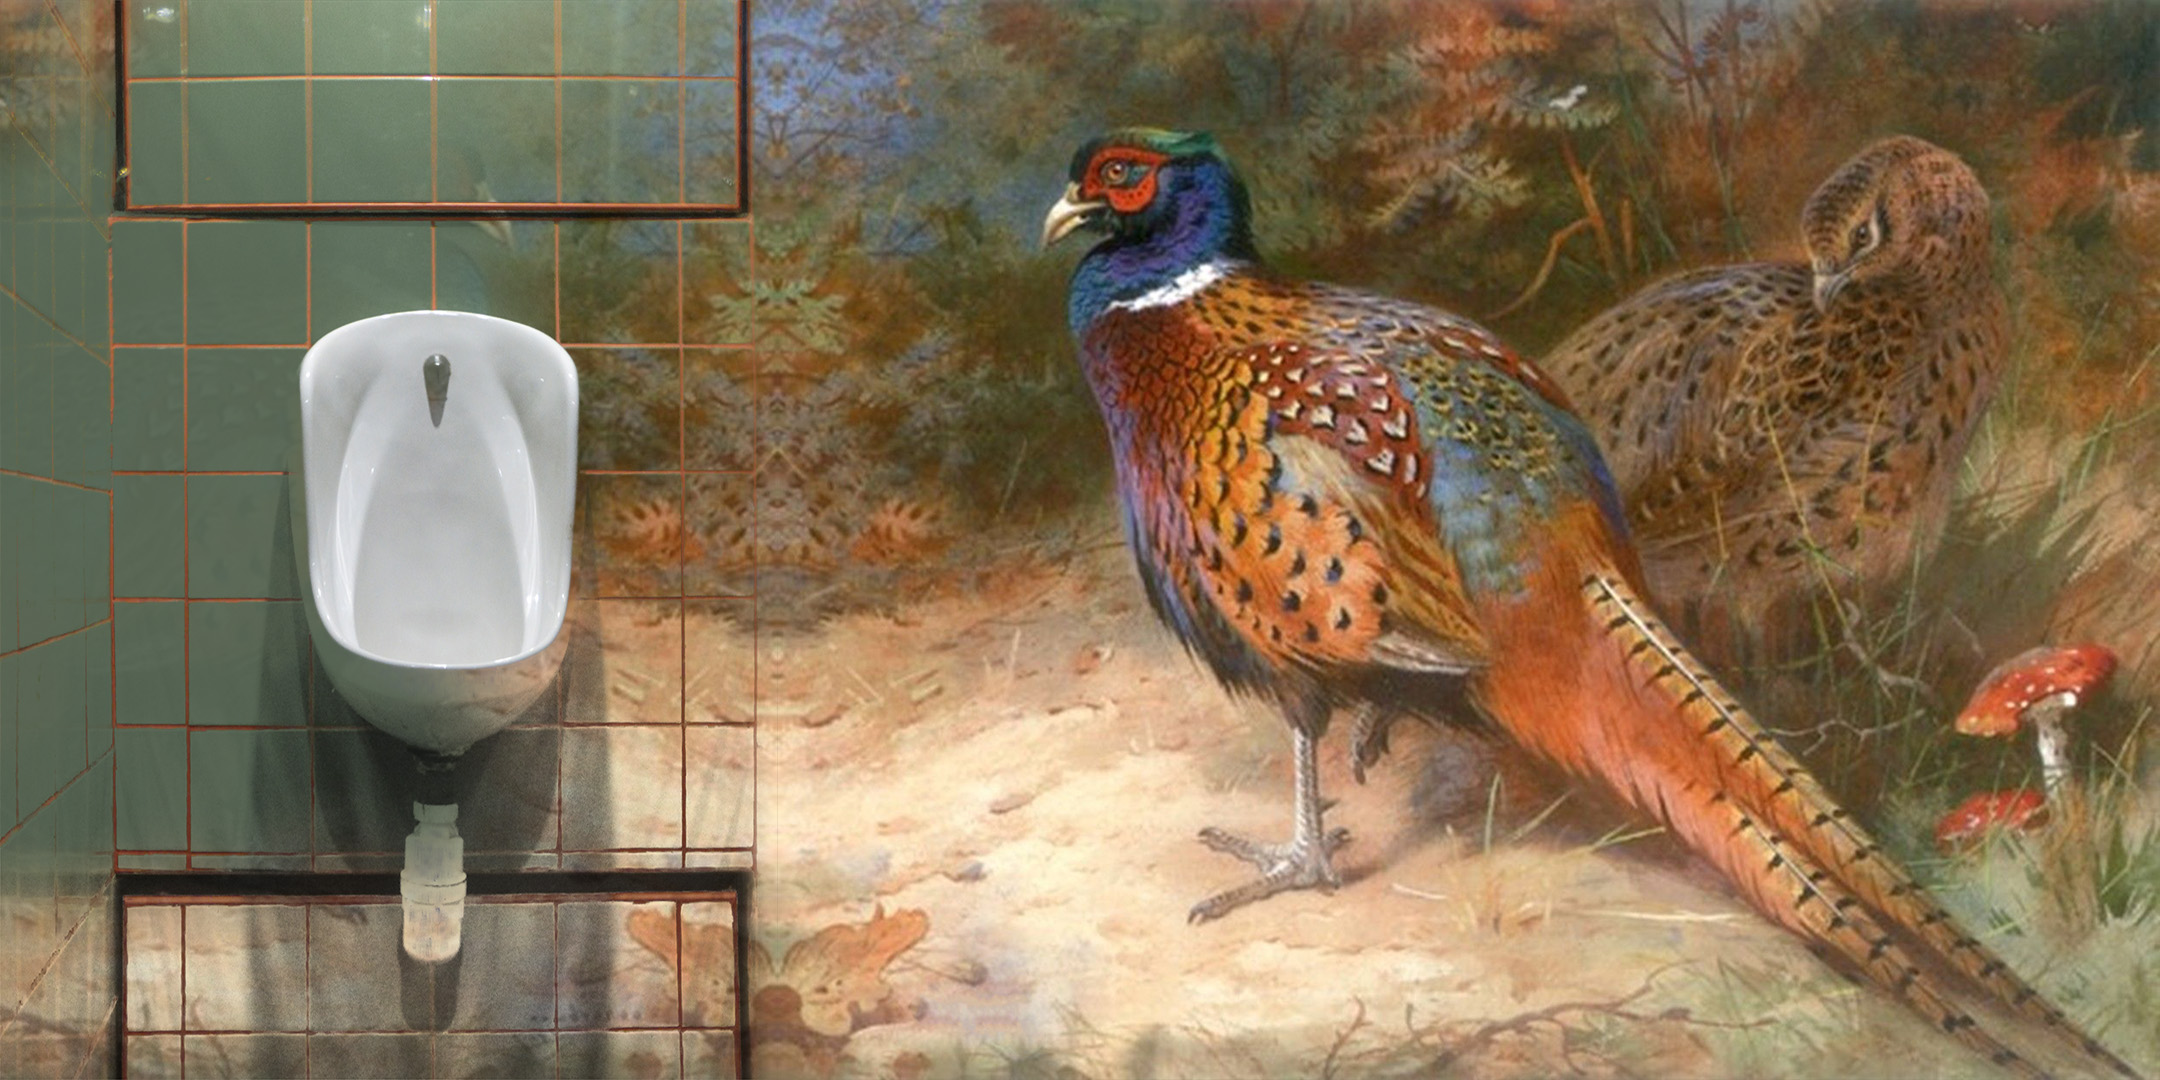 SATUR DAY NIGHT SPECIAL Projection Mapping LATRINE Restaraunt Washroom PHEASANT 1835 TAPESTRY TILED.jpg